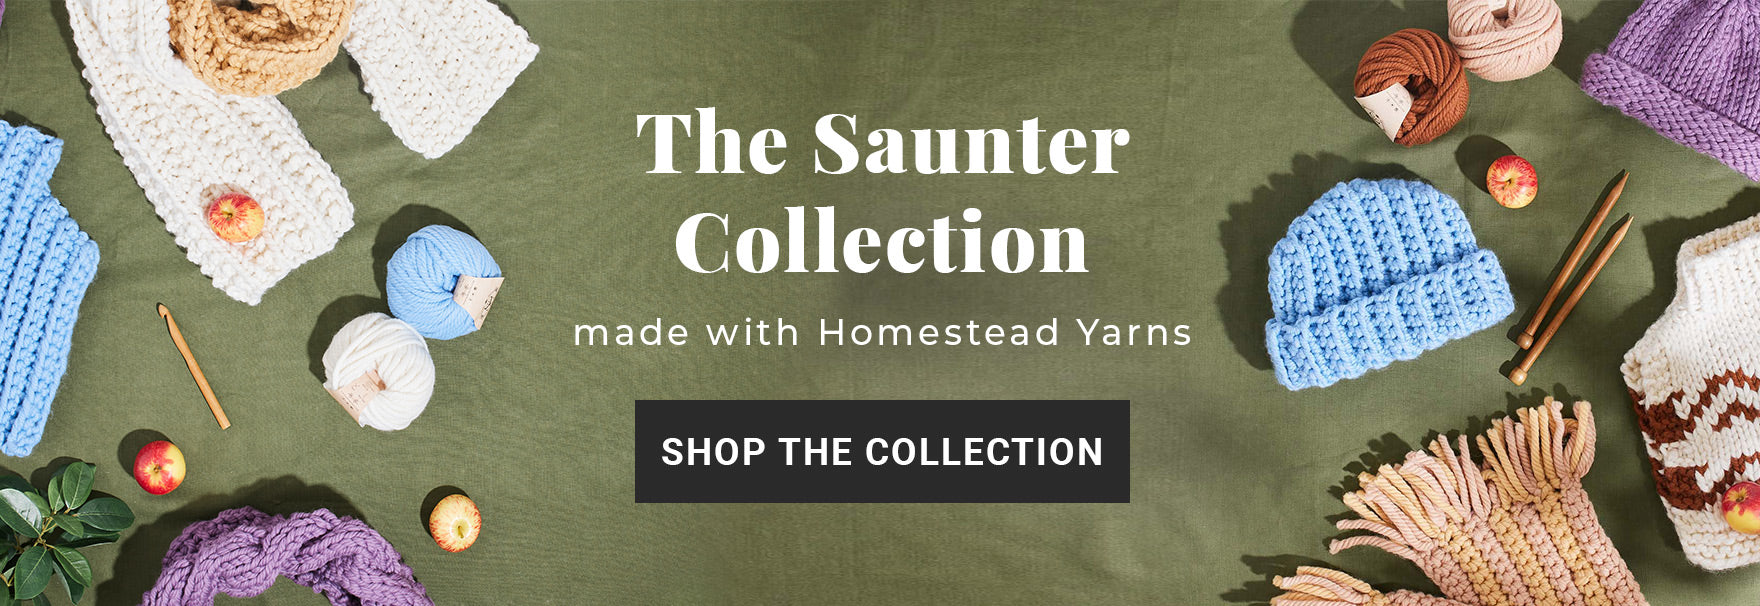 Download the Saunter Collection free knitting and crochet patterns